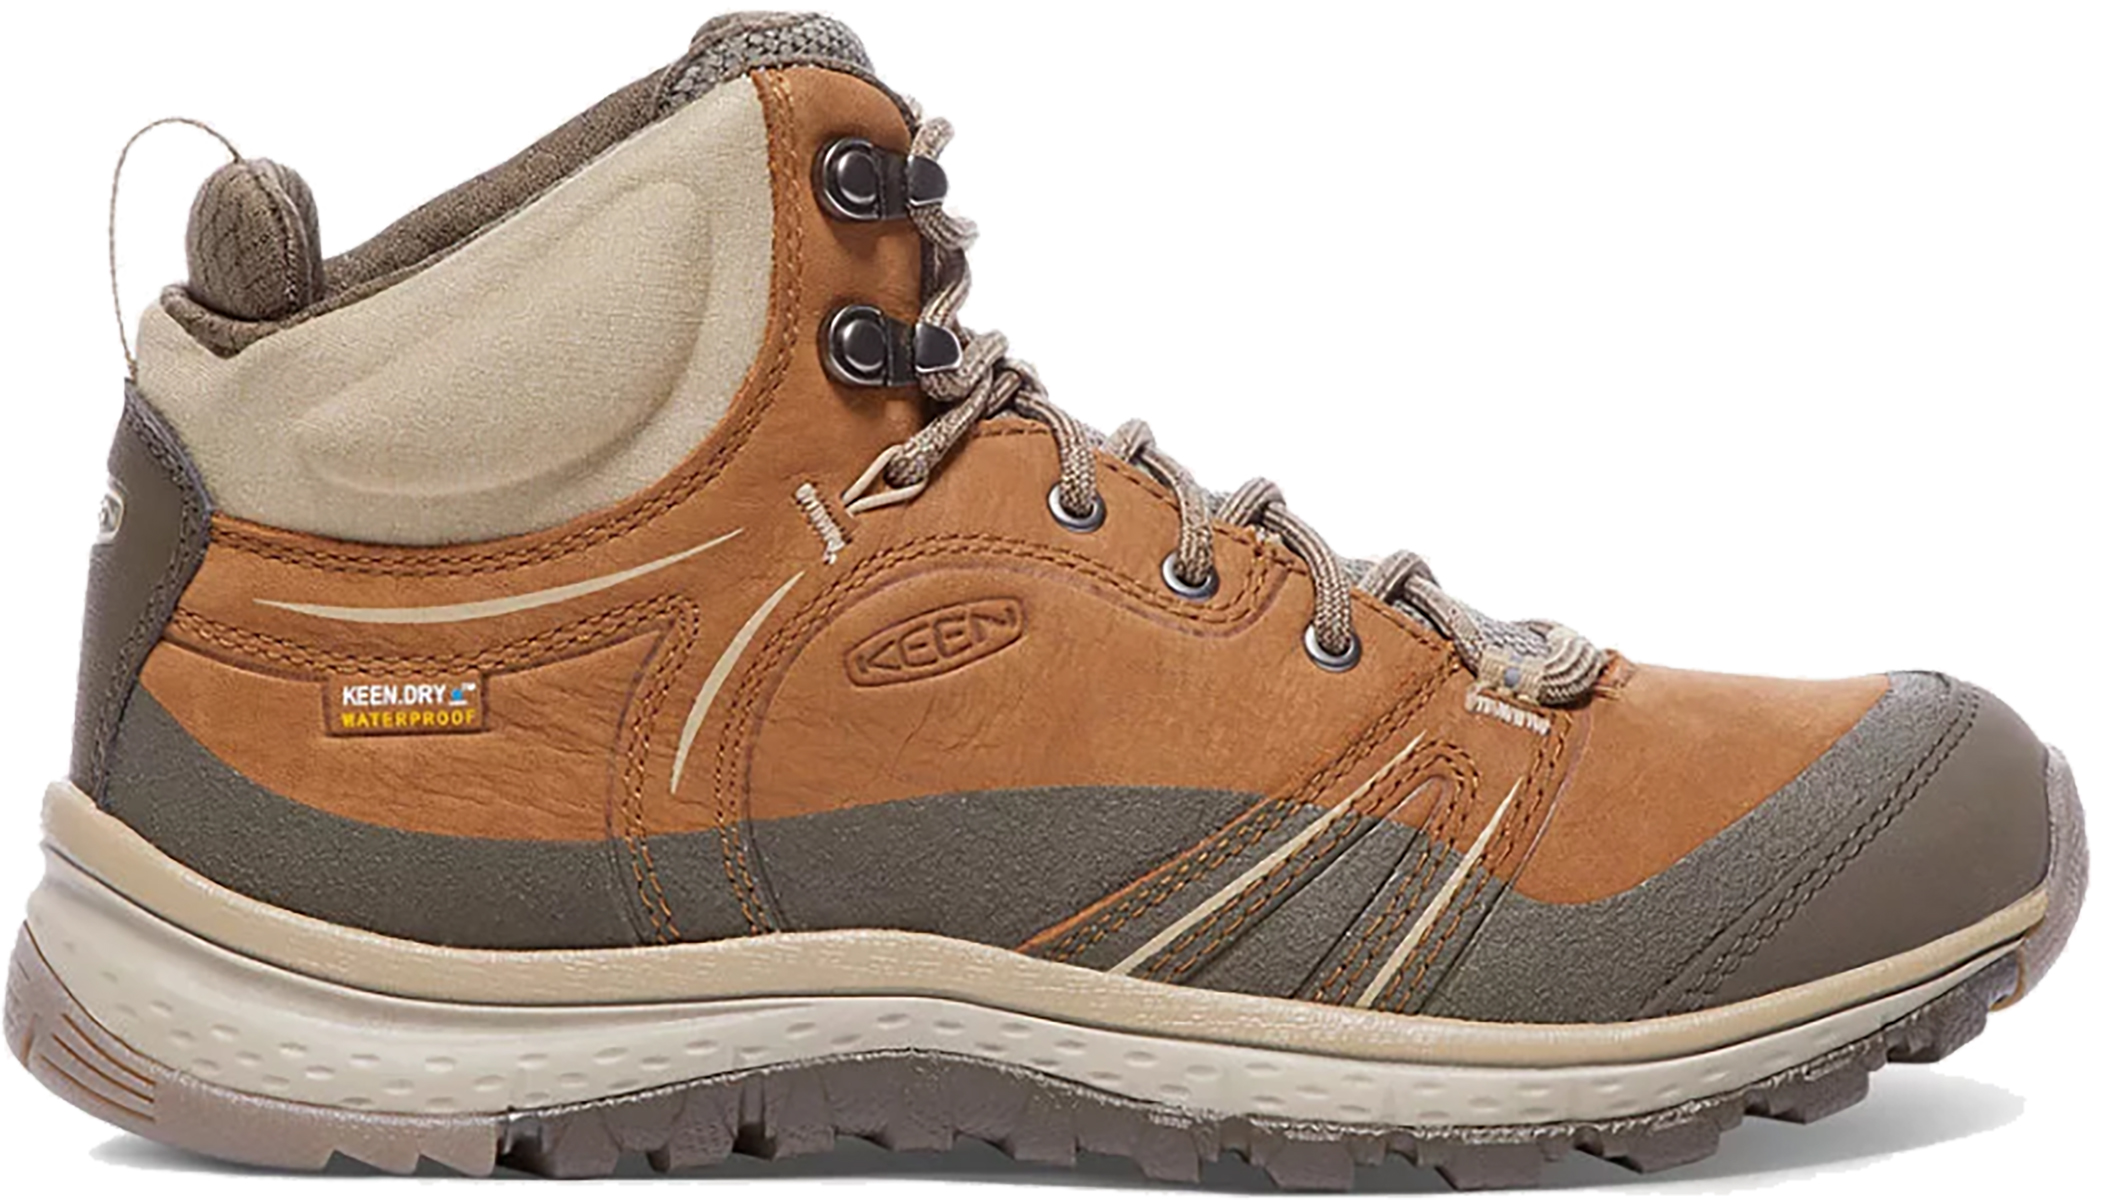 Keen Women's Terradora Leather Mid WP Shoes | Running shoes